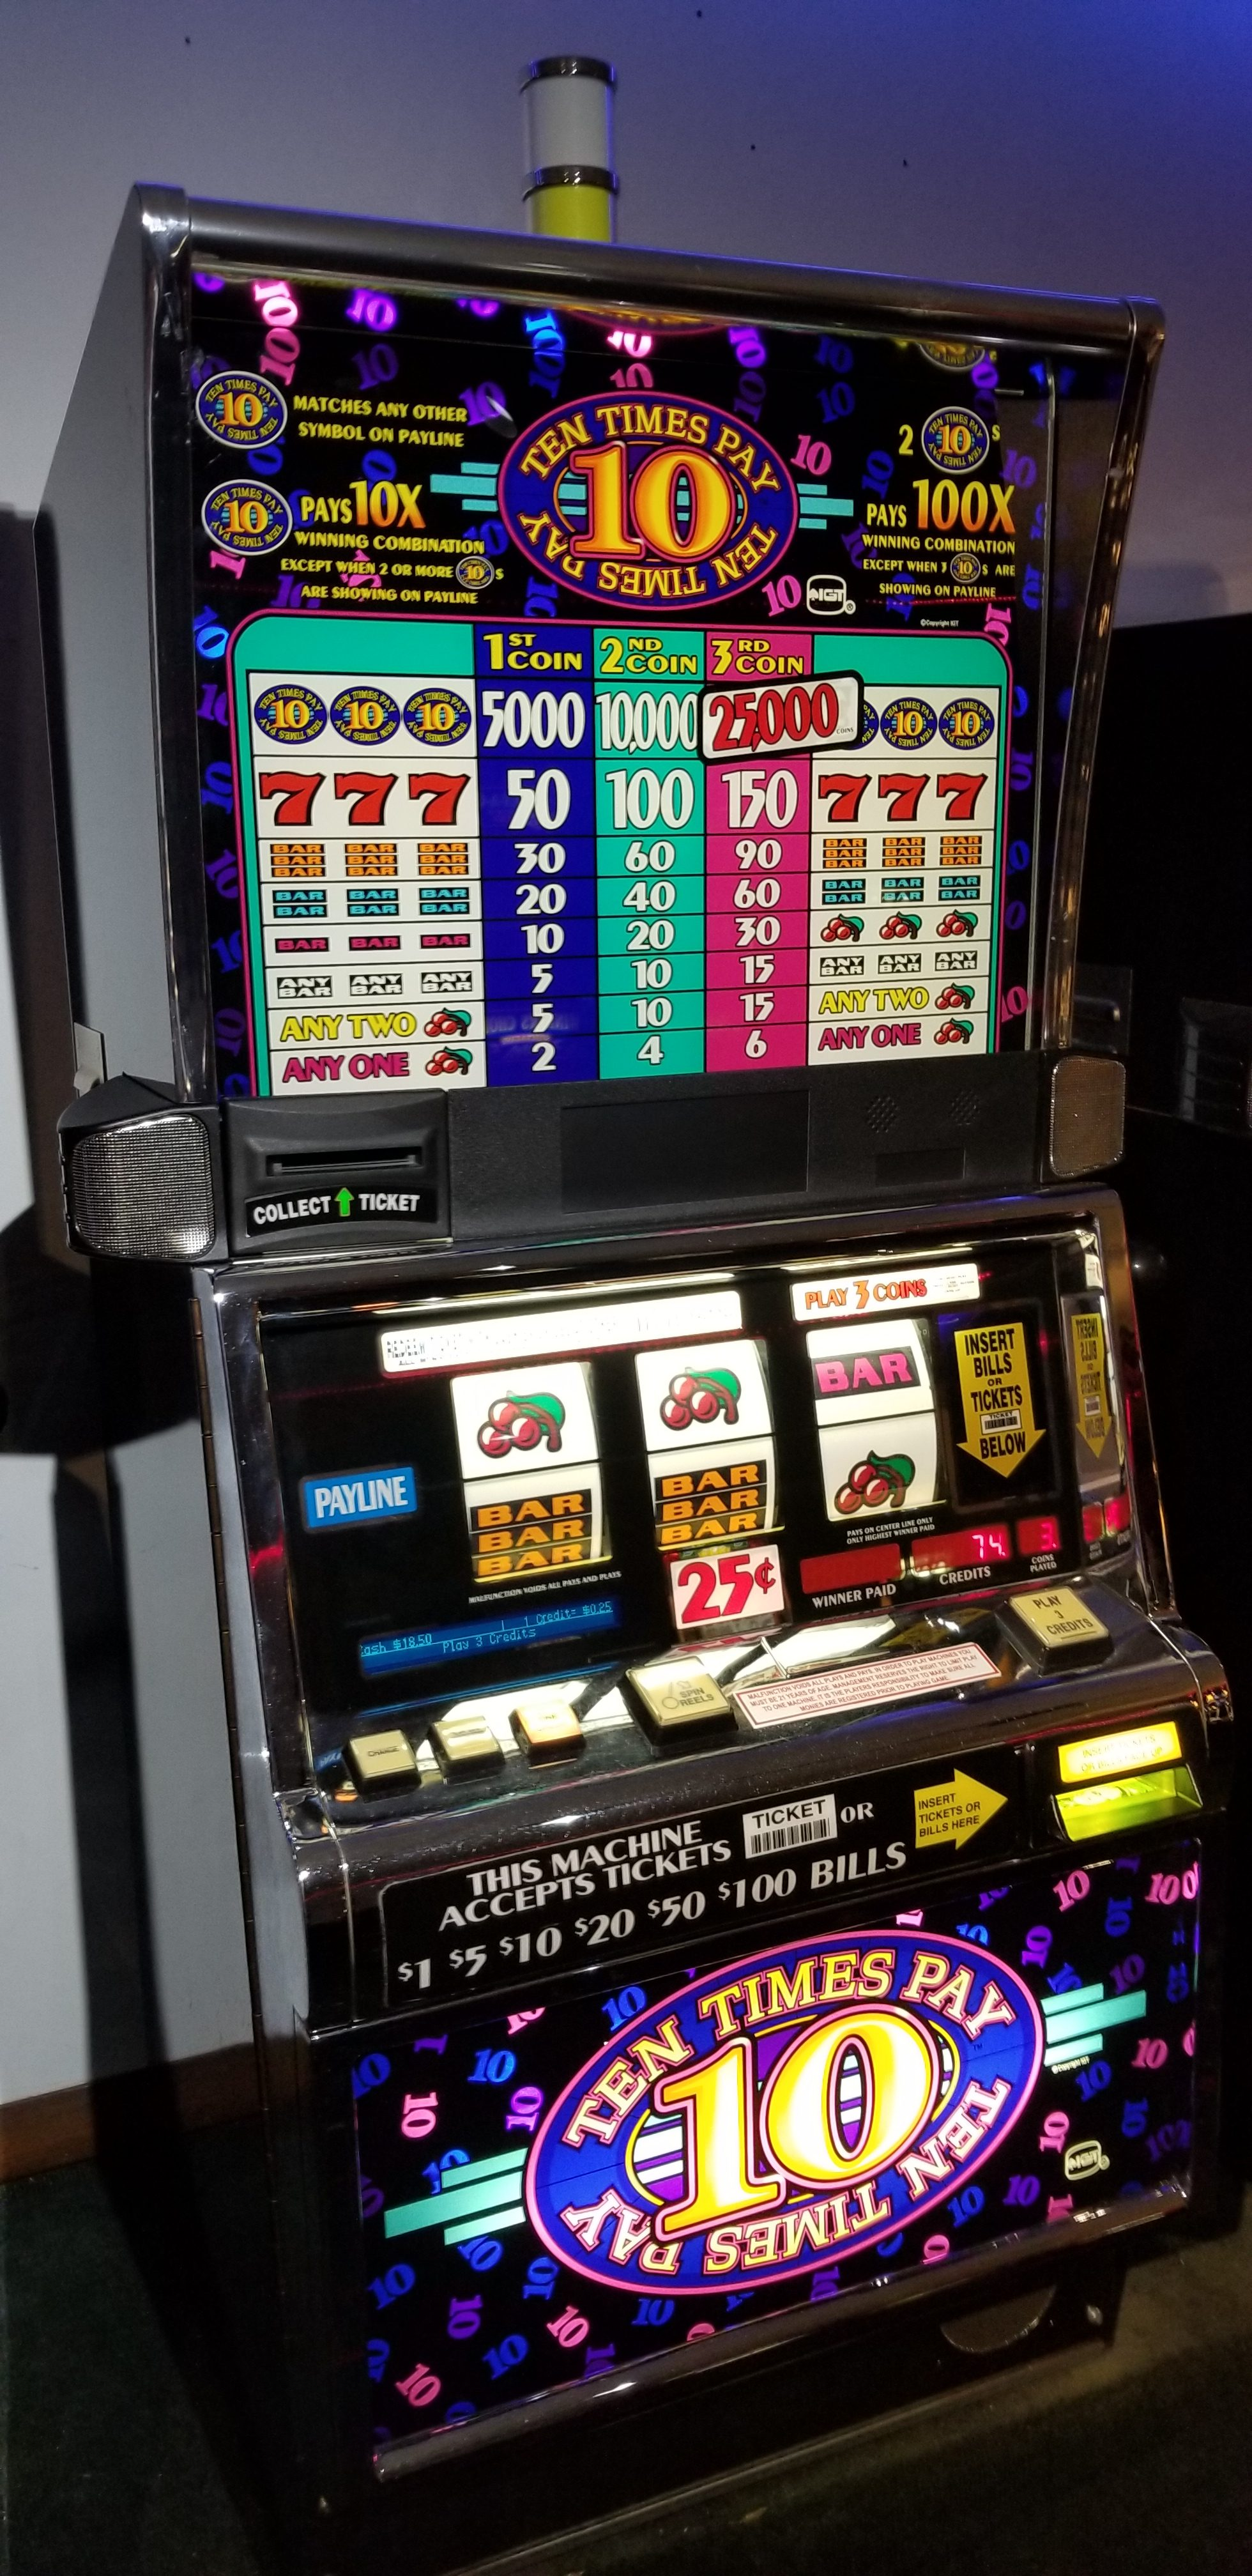 IGT S2000 Ten Times Pay 3 Coin Slot Machine - Slot